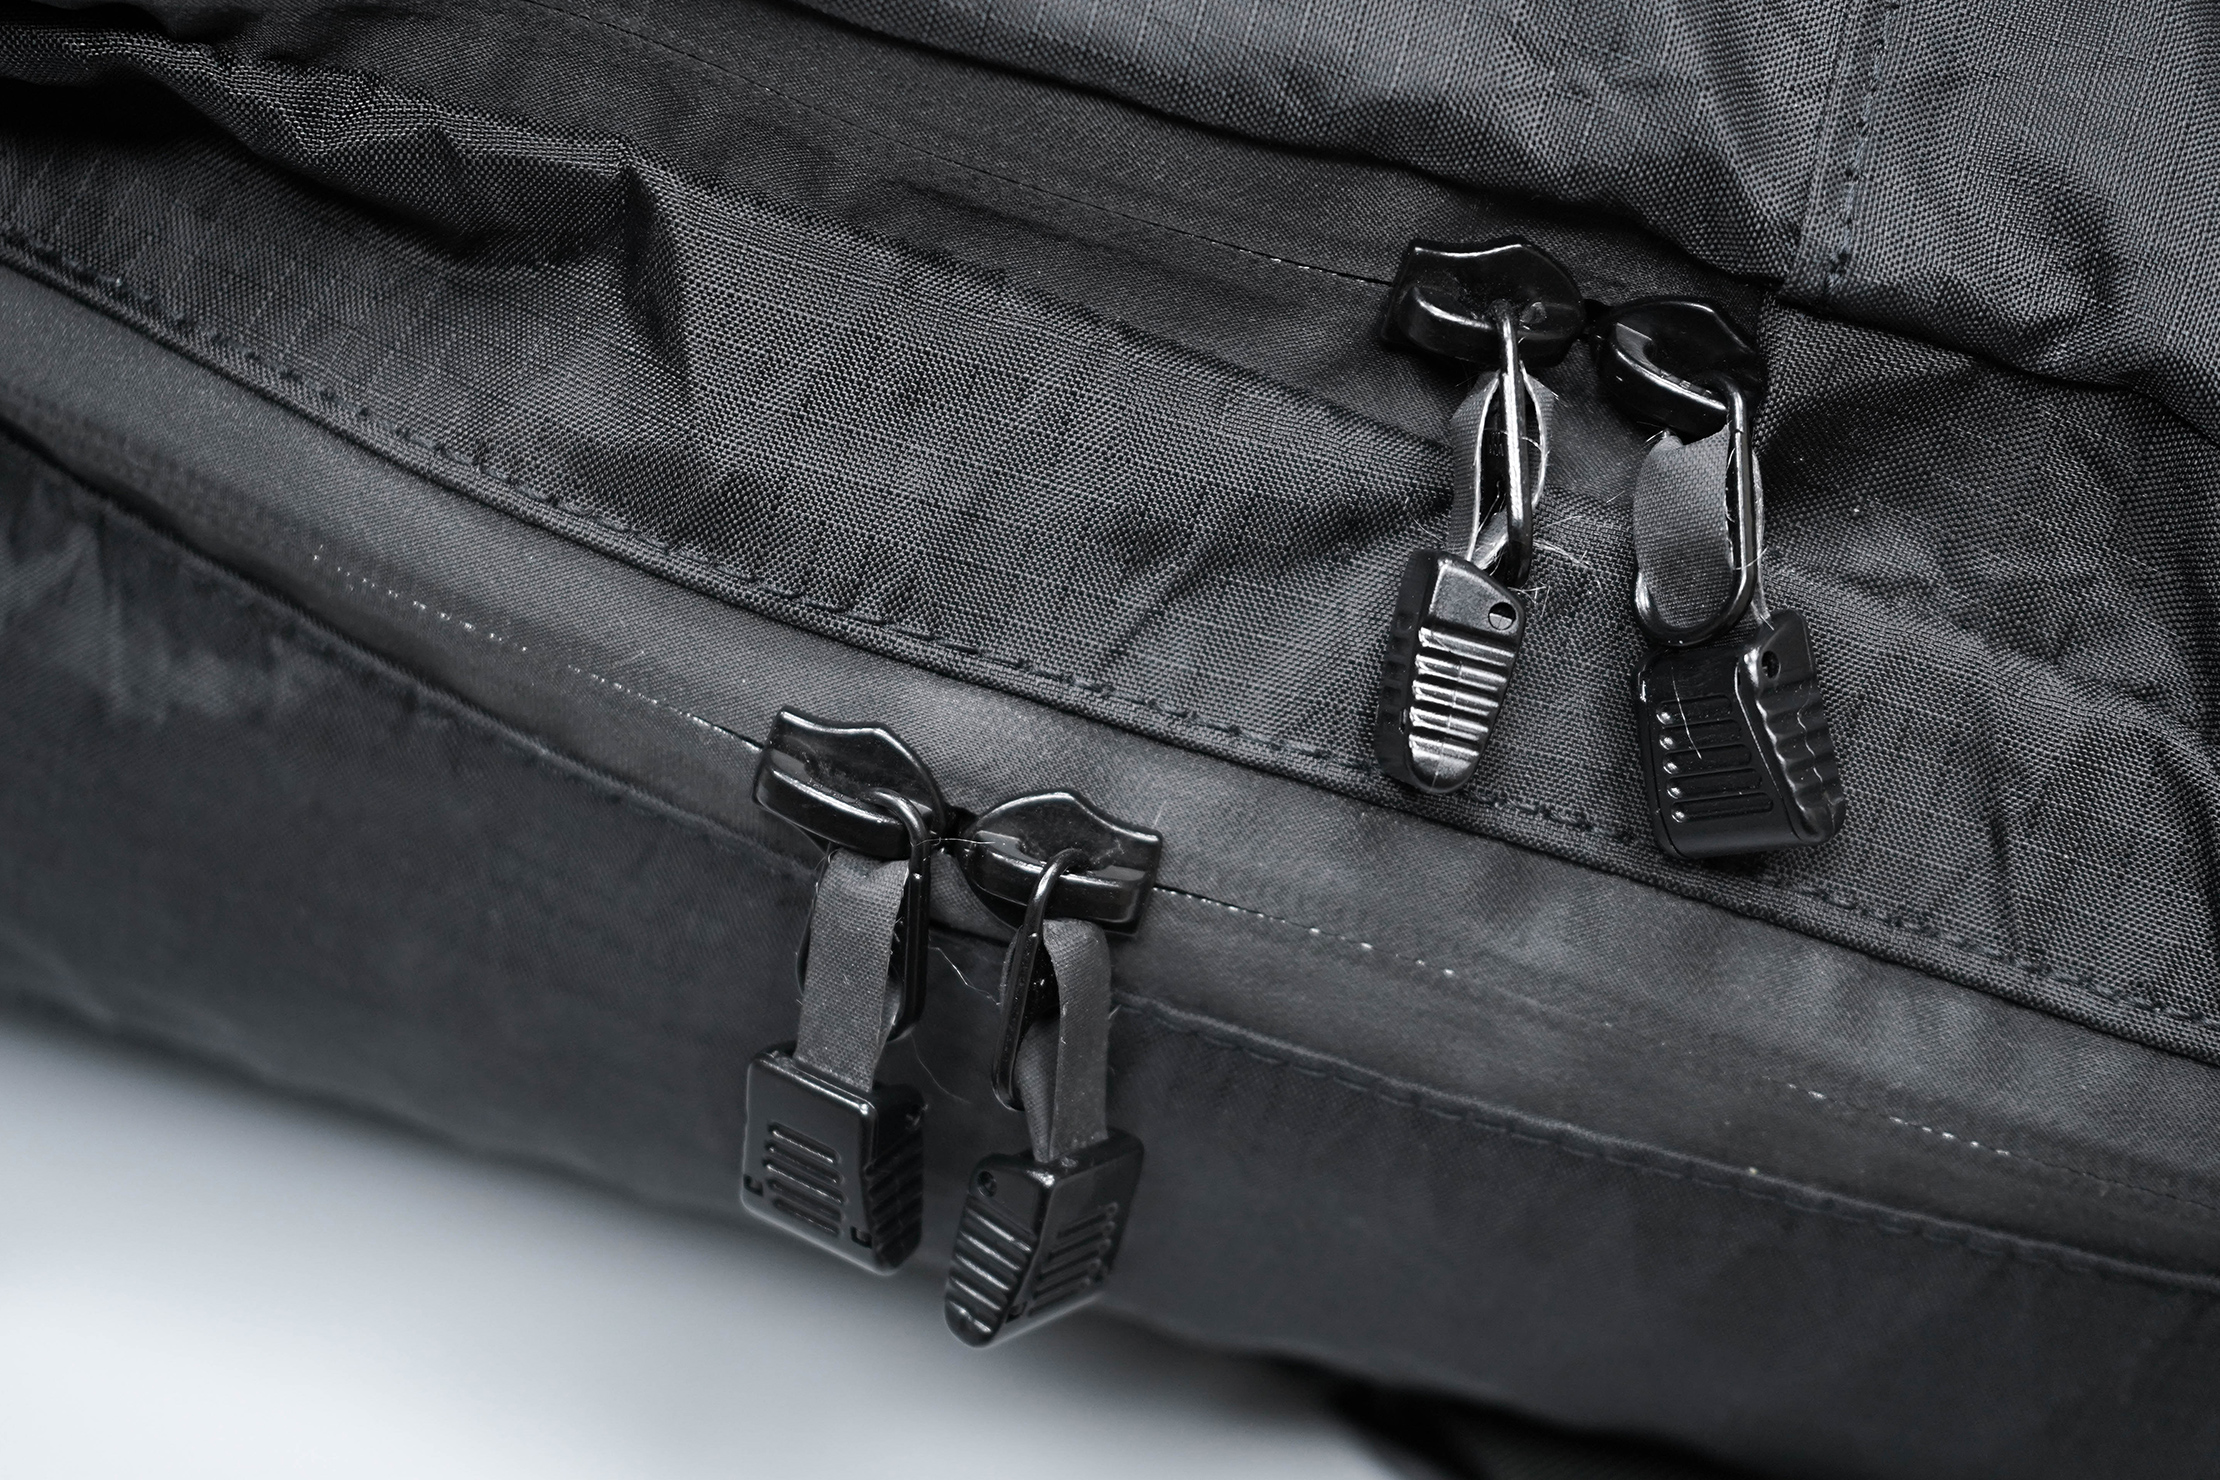 Triple Aught Design Axiom 24 Pack Zippers